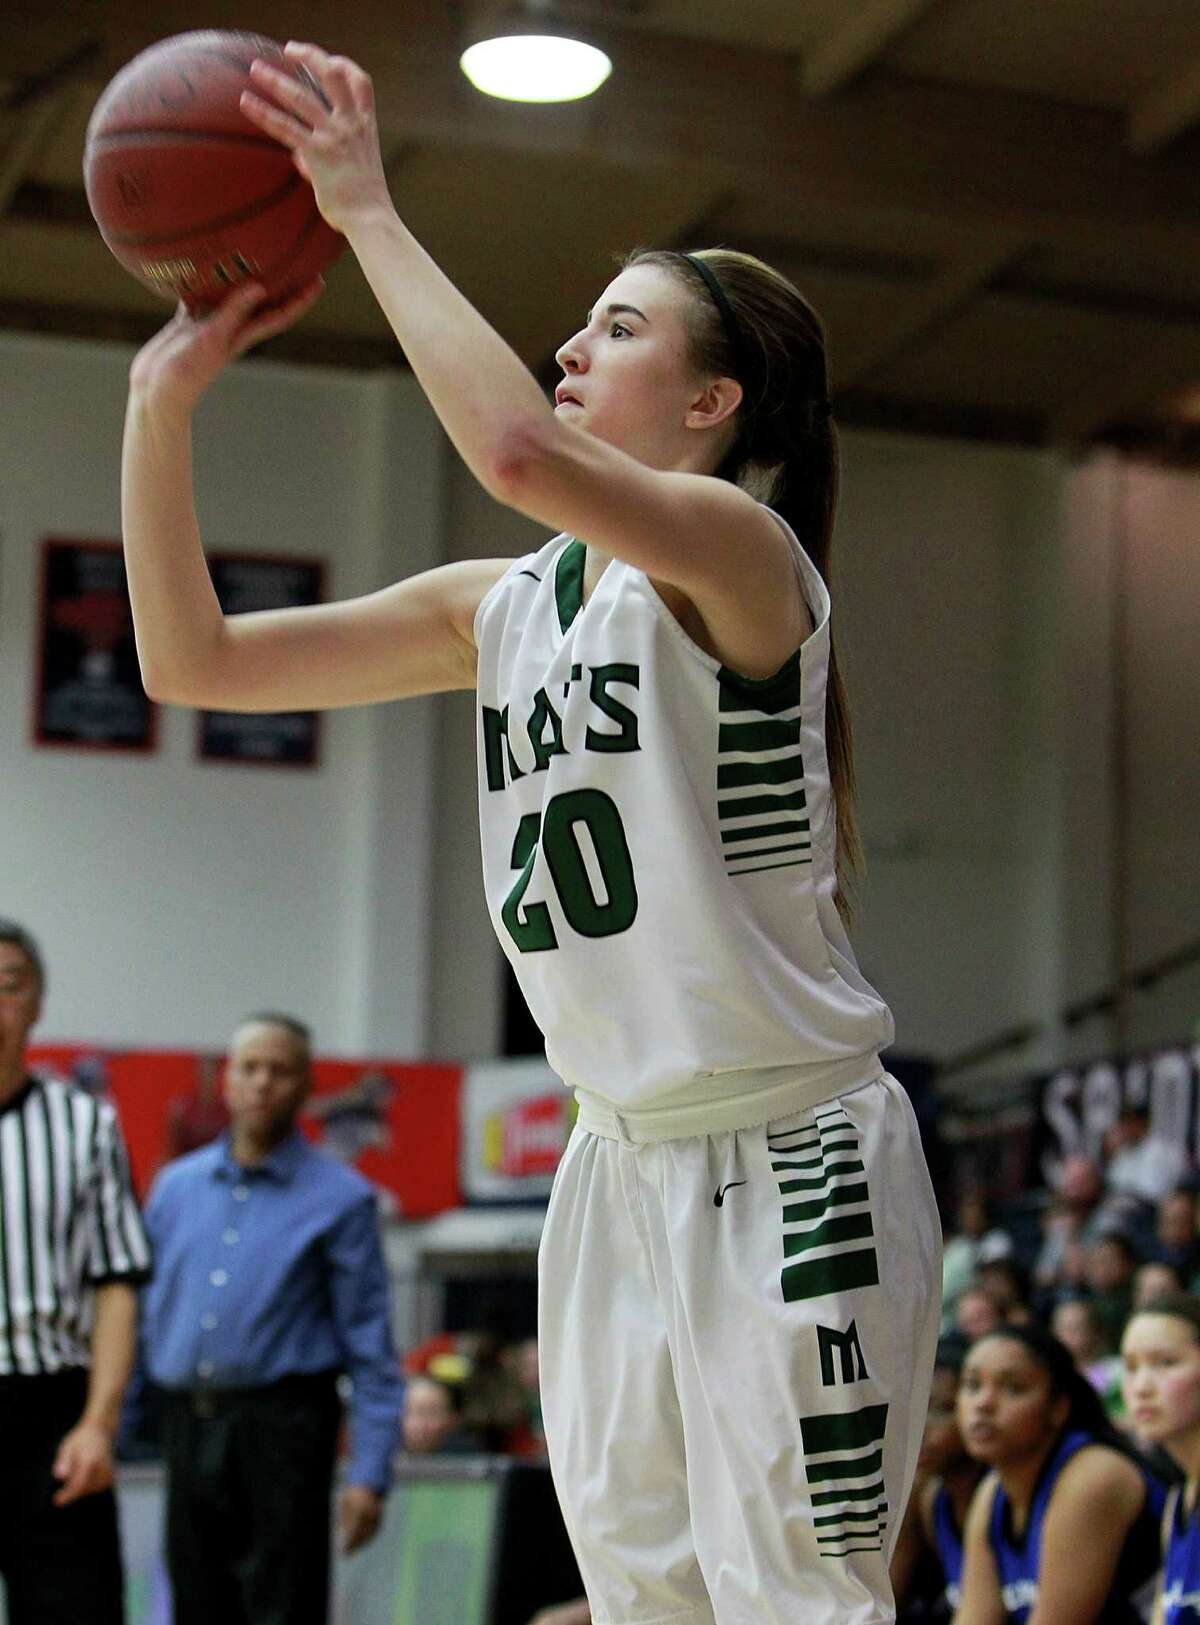 Miramonte's Sabrina Ionescu is considered one of the top 10 juniors in the nation. The Matadors are 15-2 and ranked second in The Chronicle's Top 20 Metro poll.